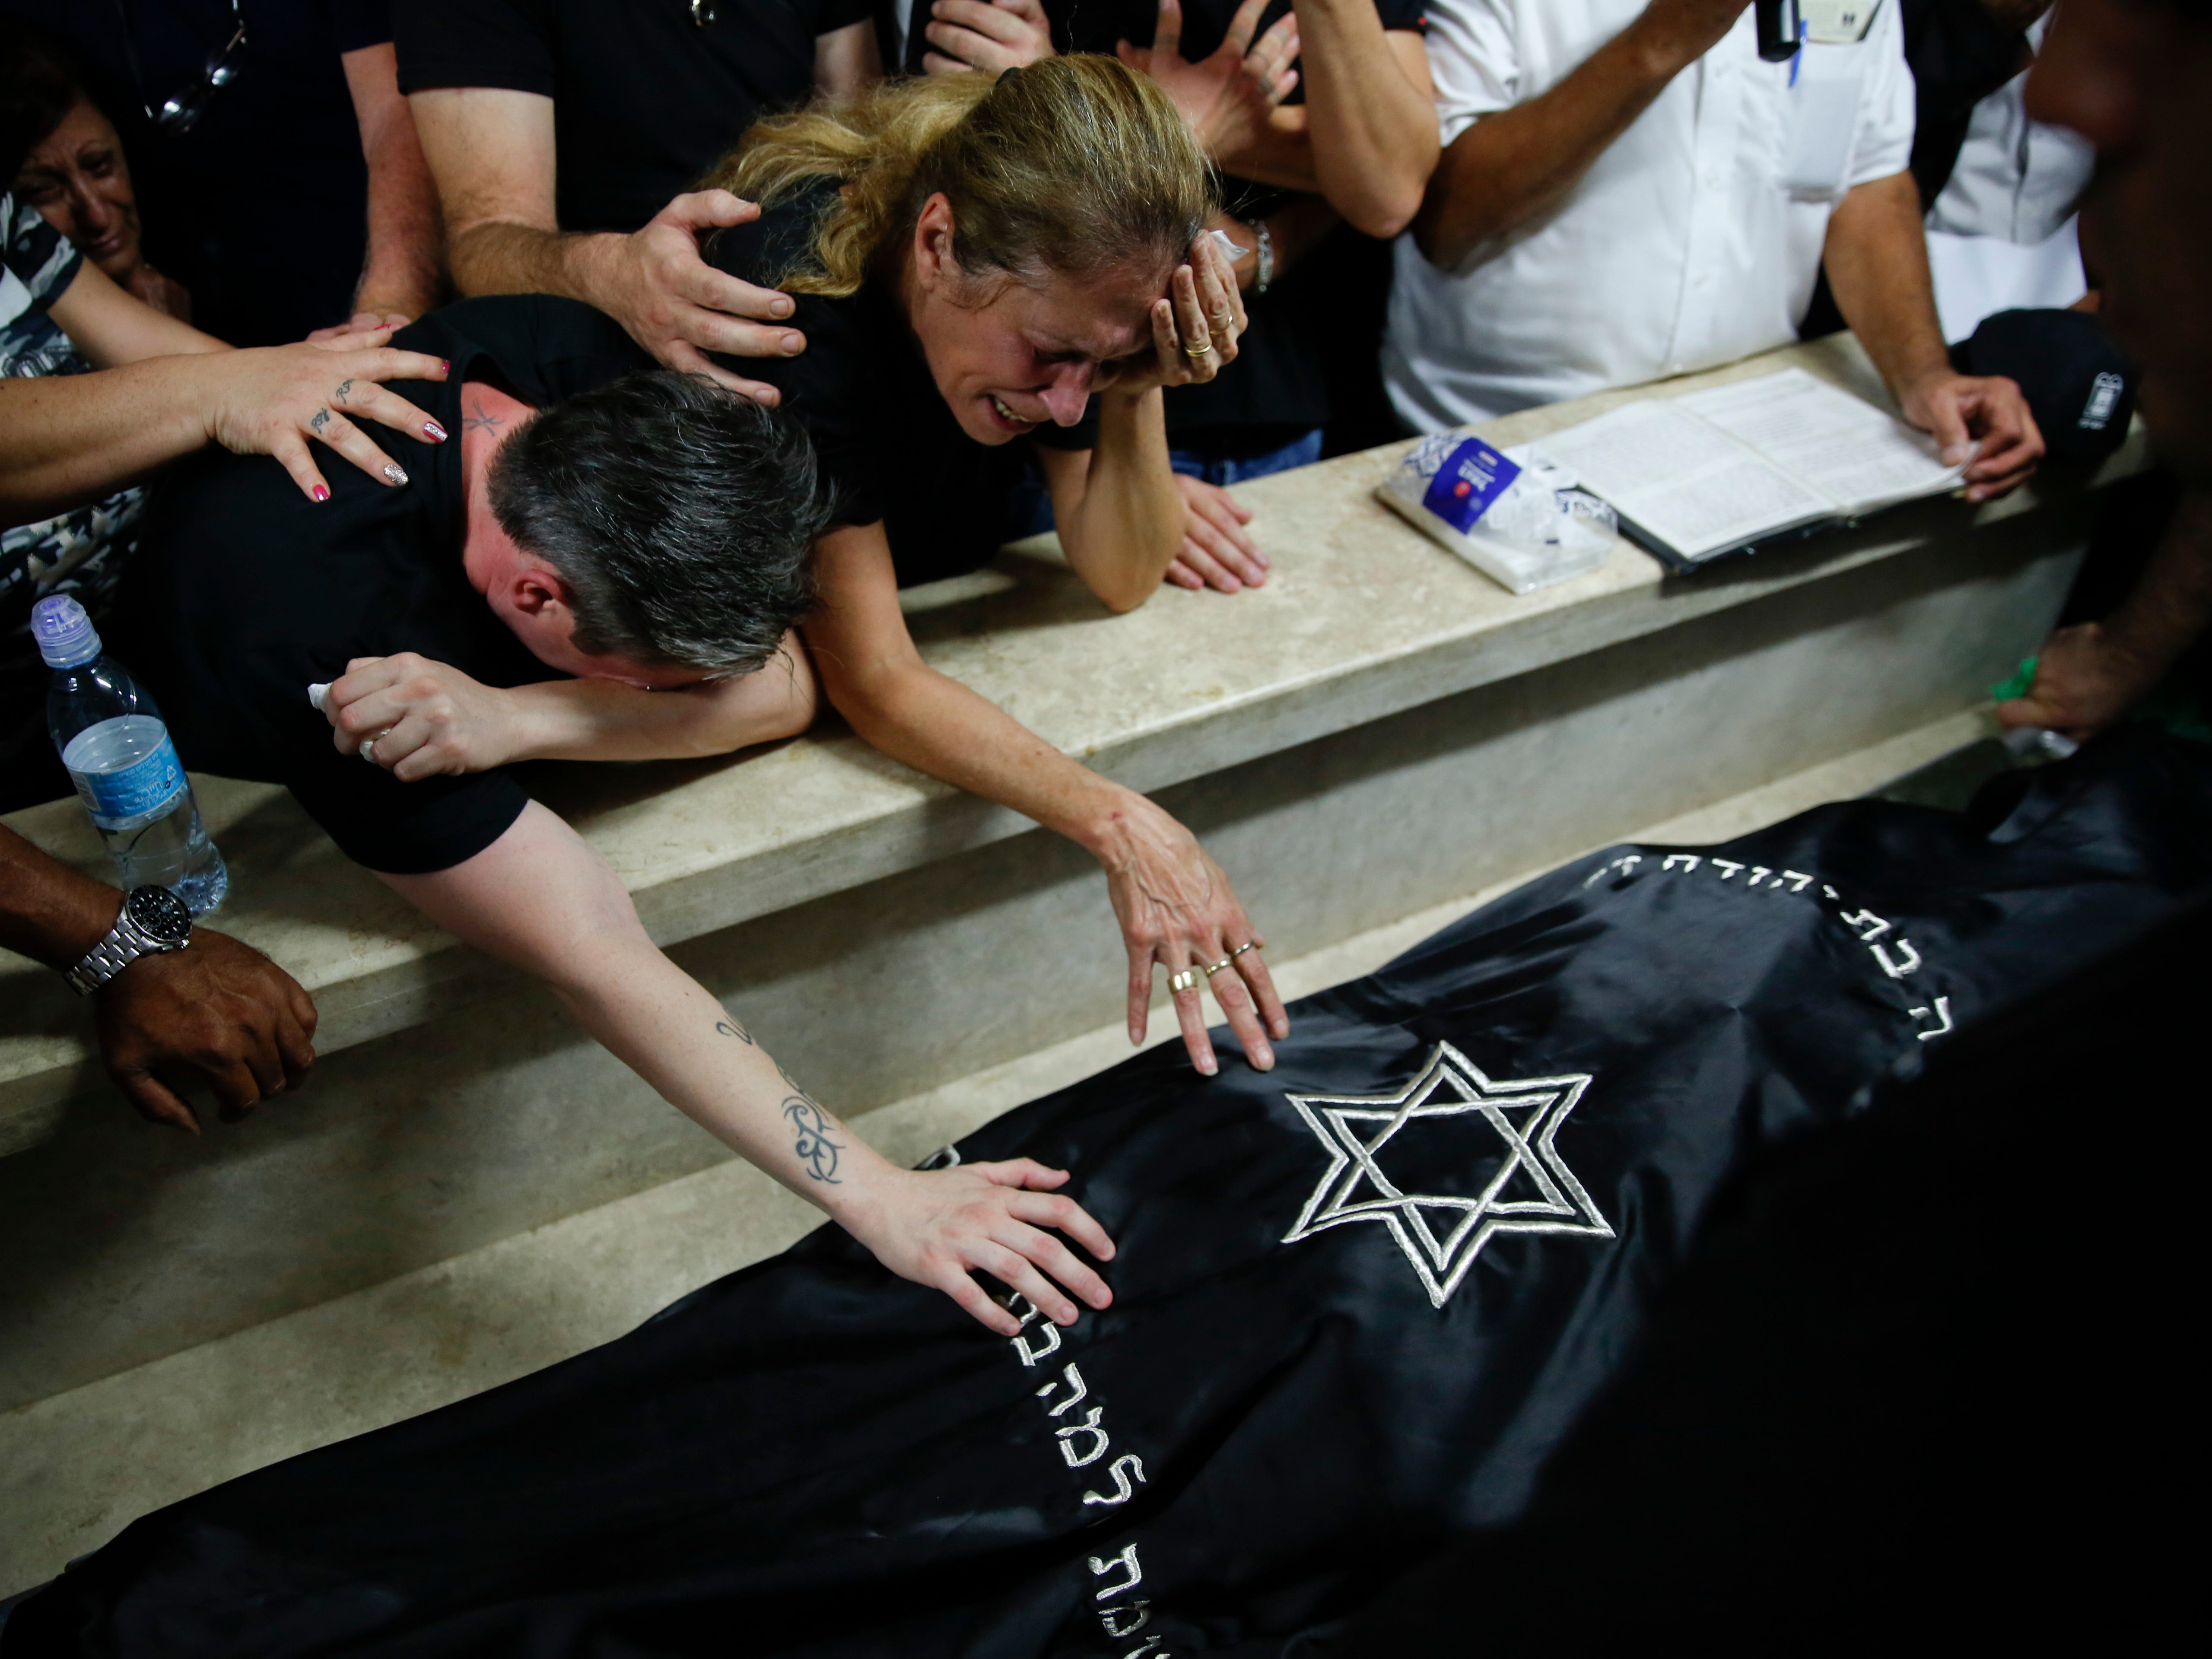 Hava Yehezkel, center, mourns next to the body of he daughter Kim during her funeral in in Rosh HaAyin, Israel, Monday, Oct. 8, 2018. Kim, 28, was killed after a Palestinian attacker opened fire at an  Israeli-Palestinian industrial zone in the West Bank Sunday, killing two Israelis and seriously wounding a third, the military said.